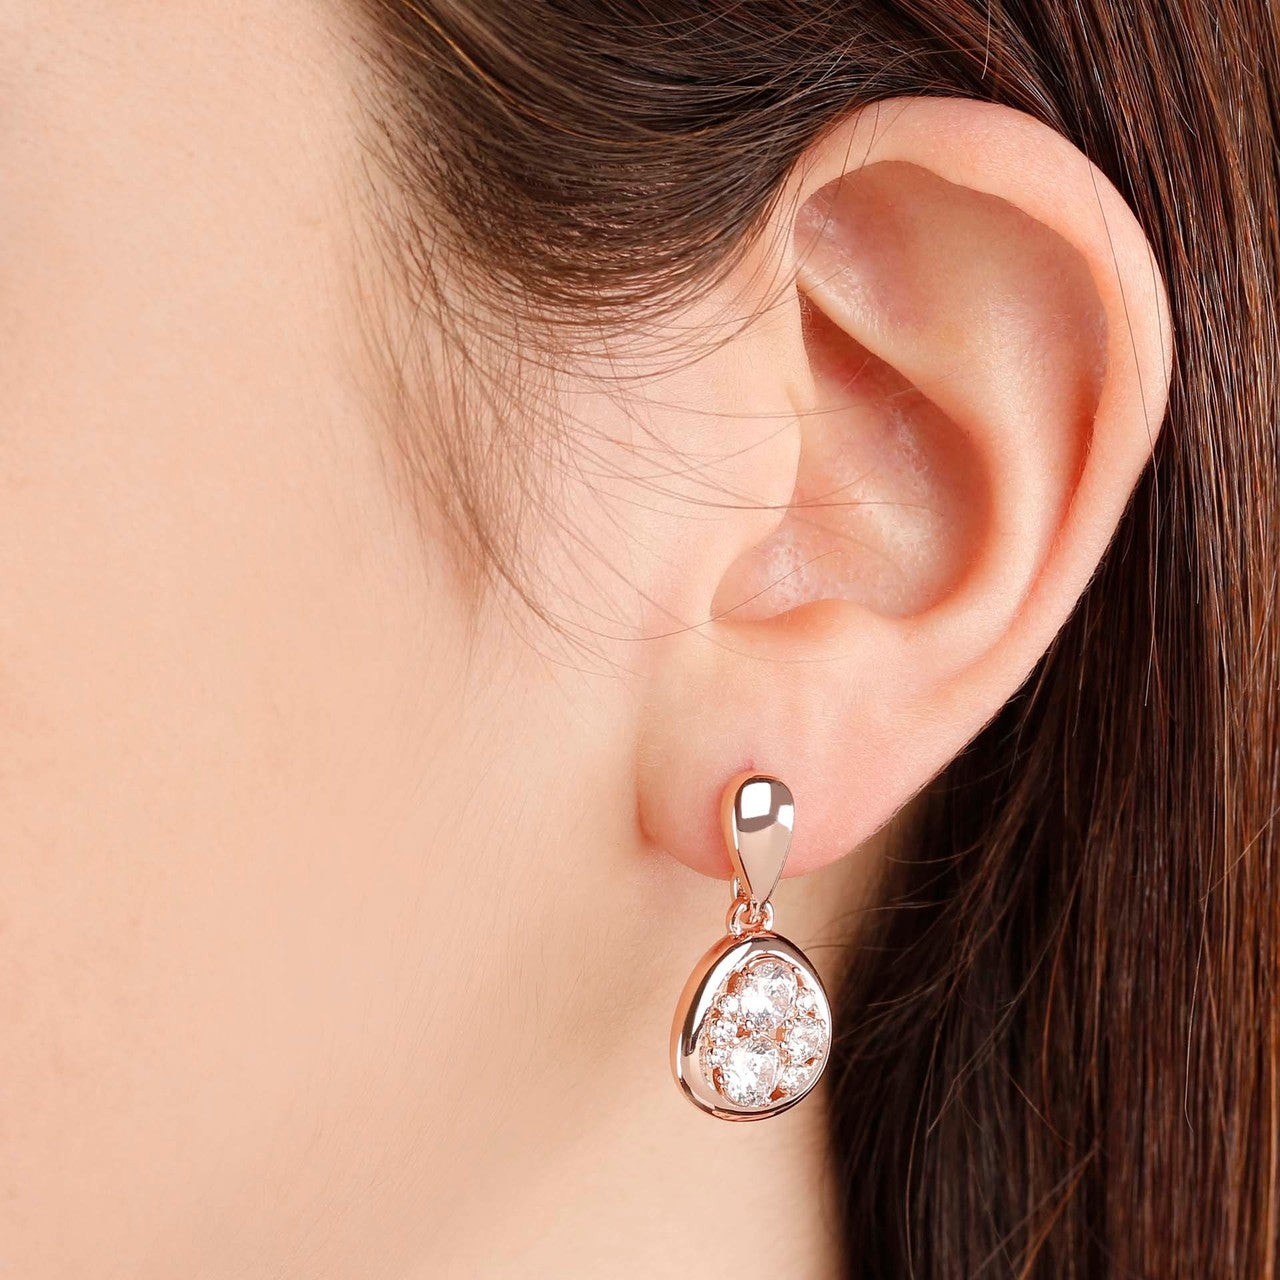 worn Moon Earrings CUBIC ZIRCONIA